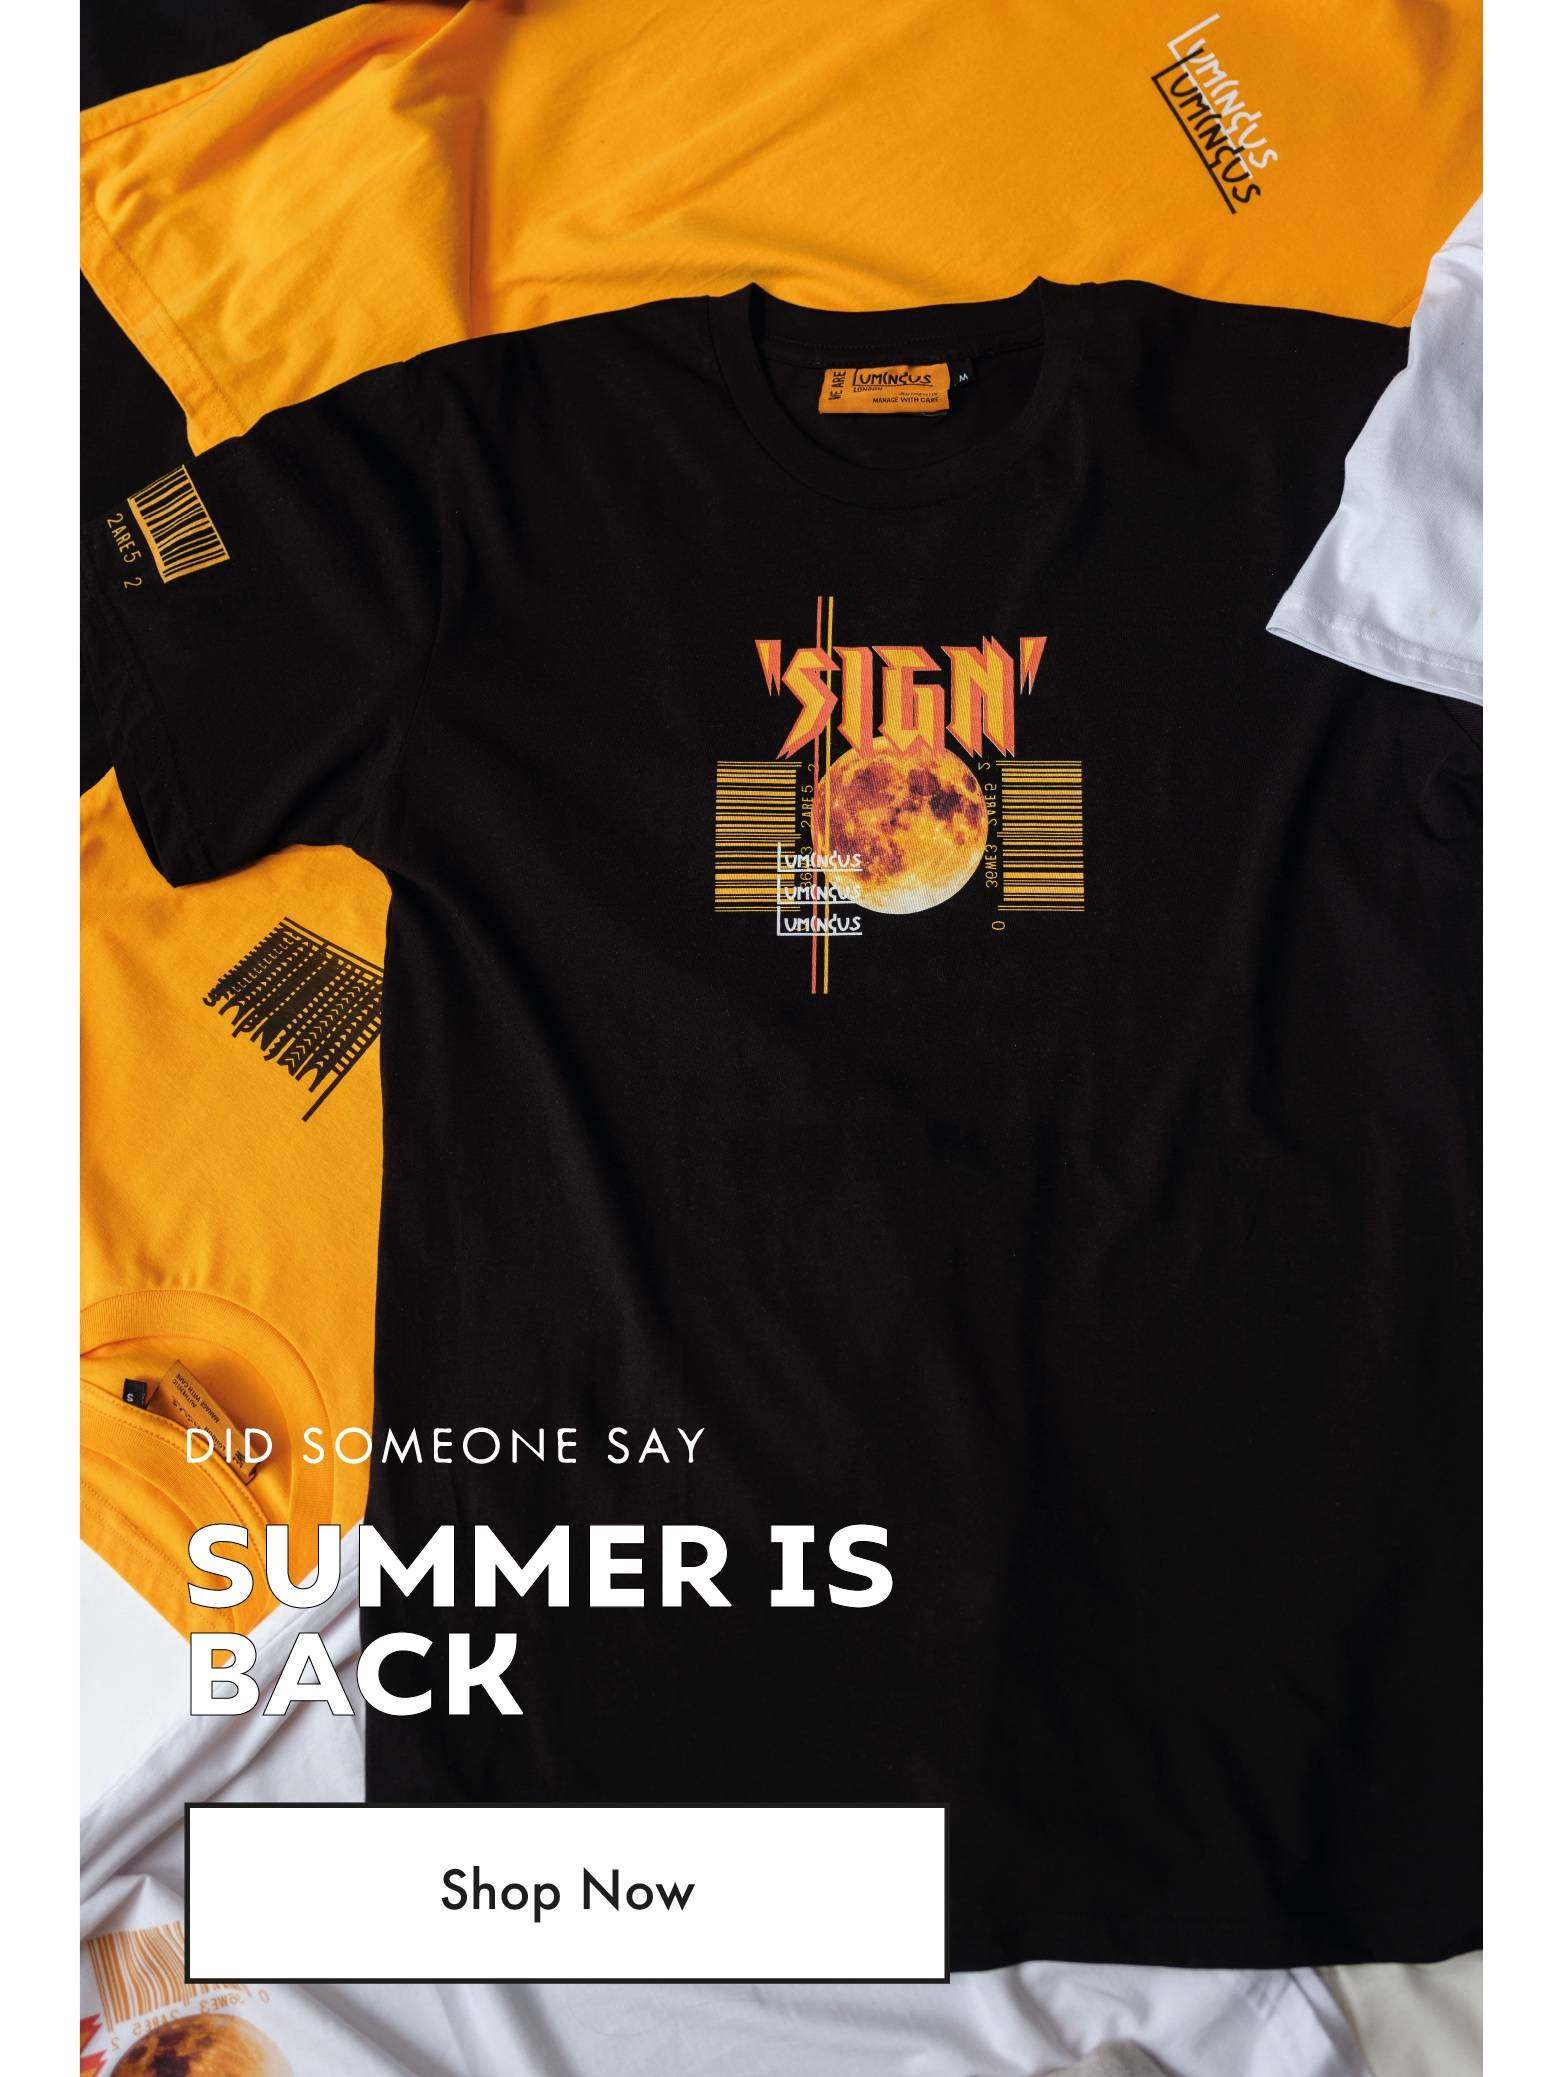 Did Someone Say Summer Is Back - Shop Now